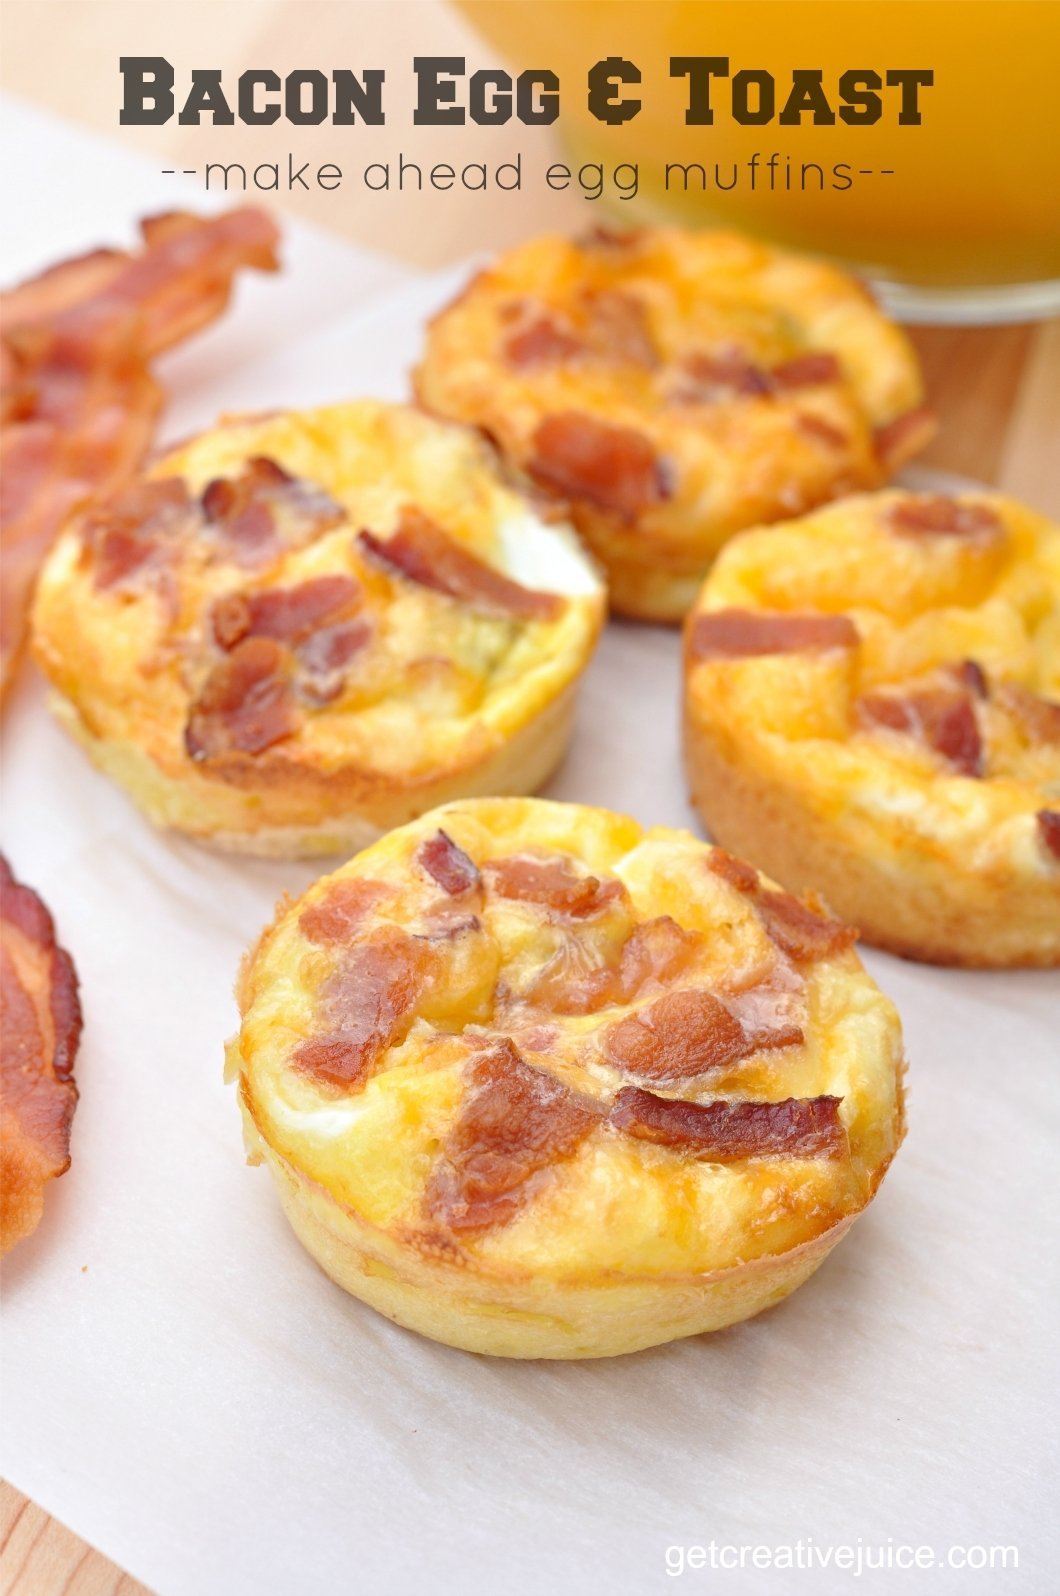 10 Fashionable Breakfast Ideas With Eggs And Bacon back to school breakfast ideas recipe 1 2020